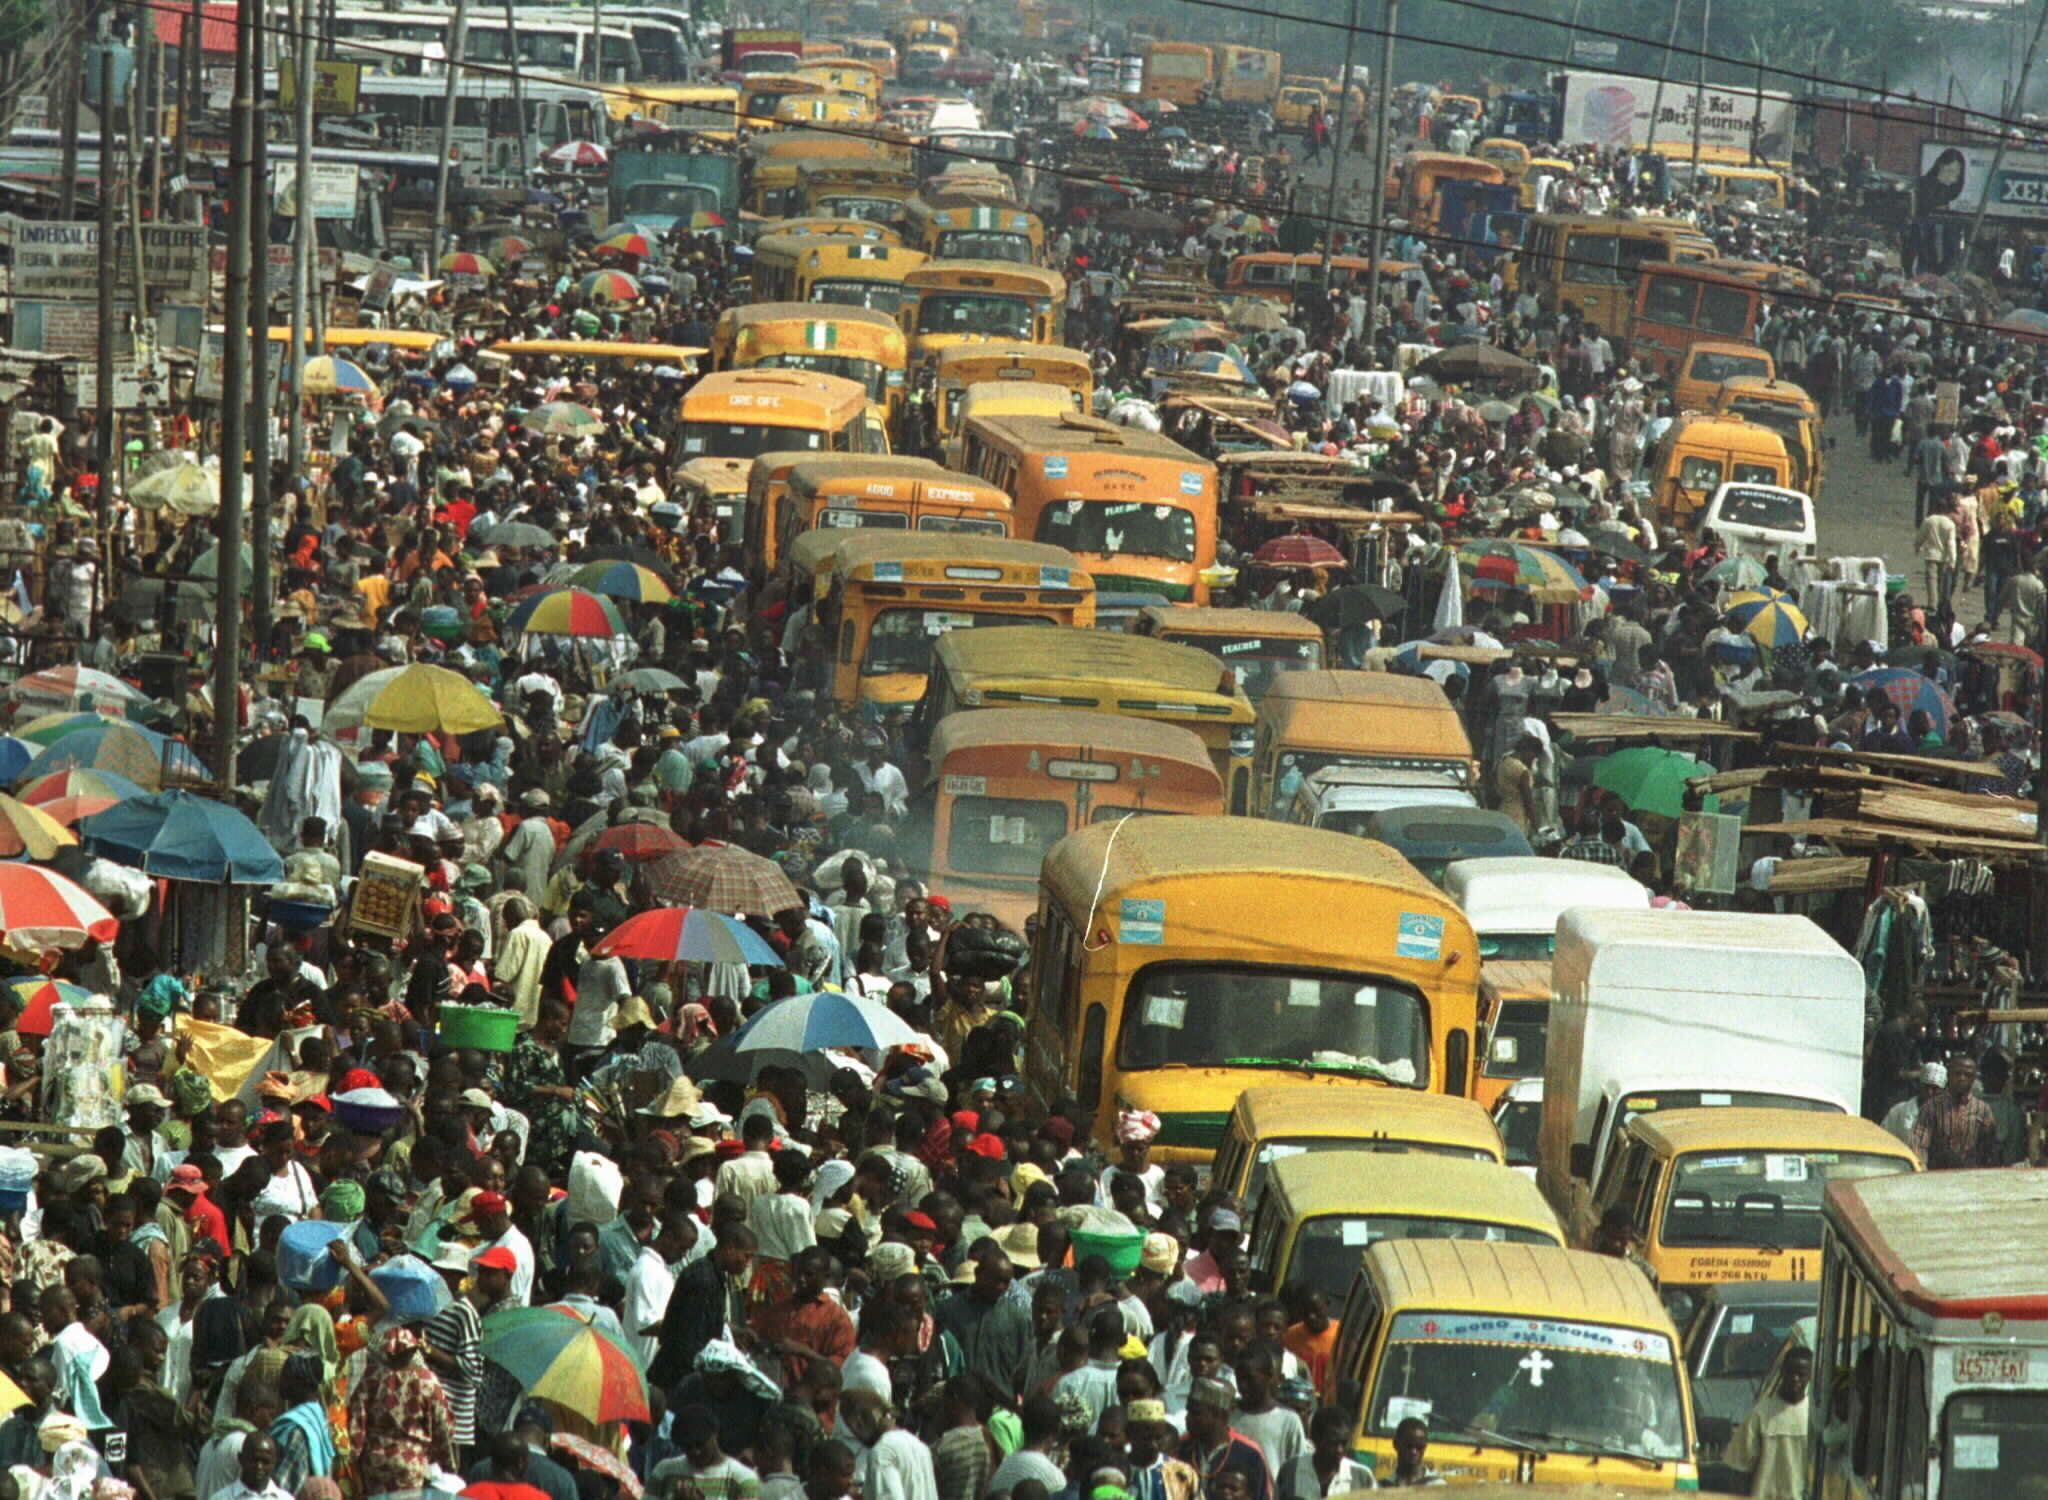 Lagos, Africa's most populous city, is in the midst of a major water